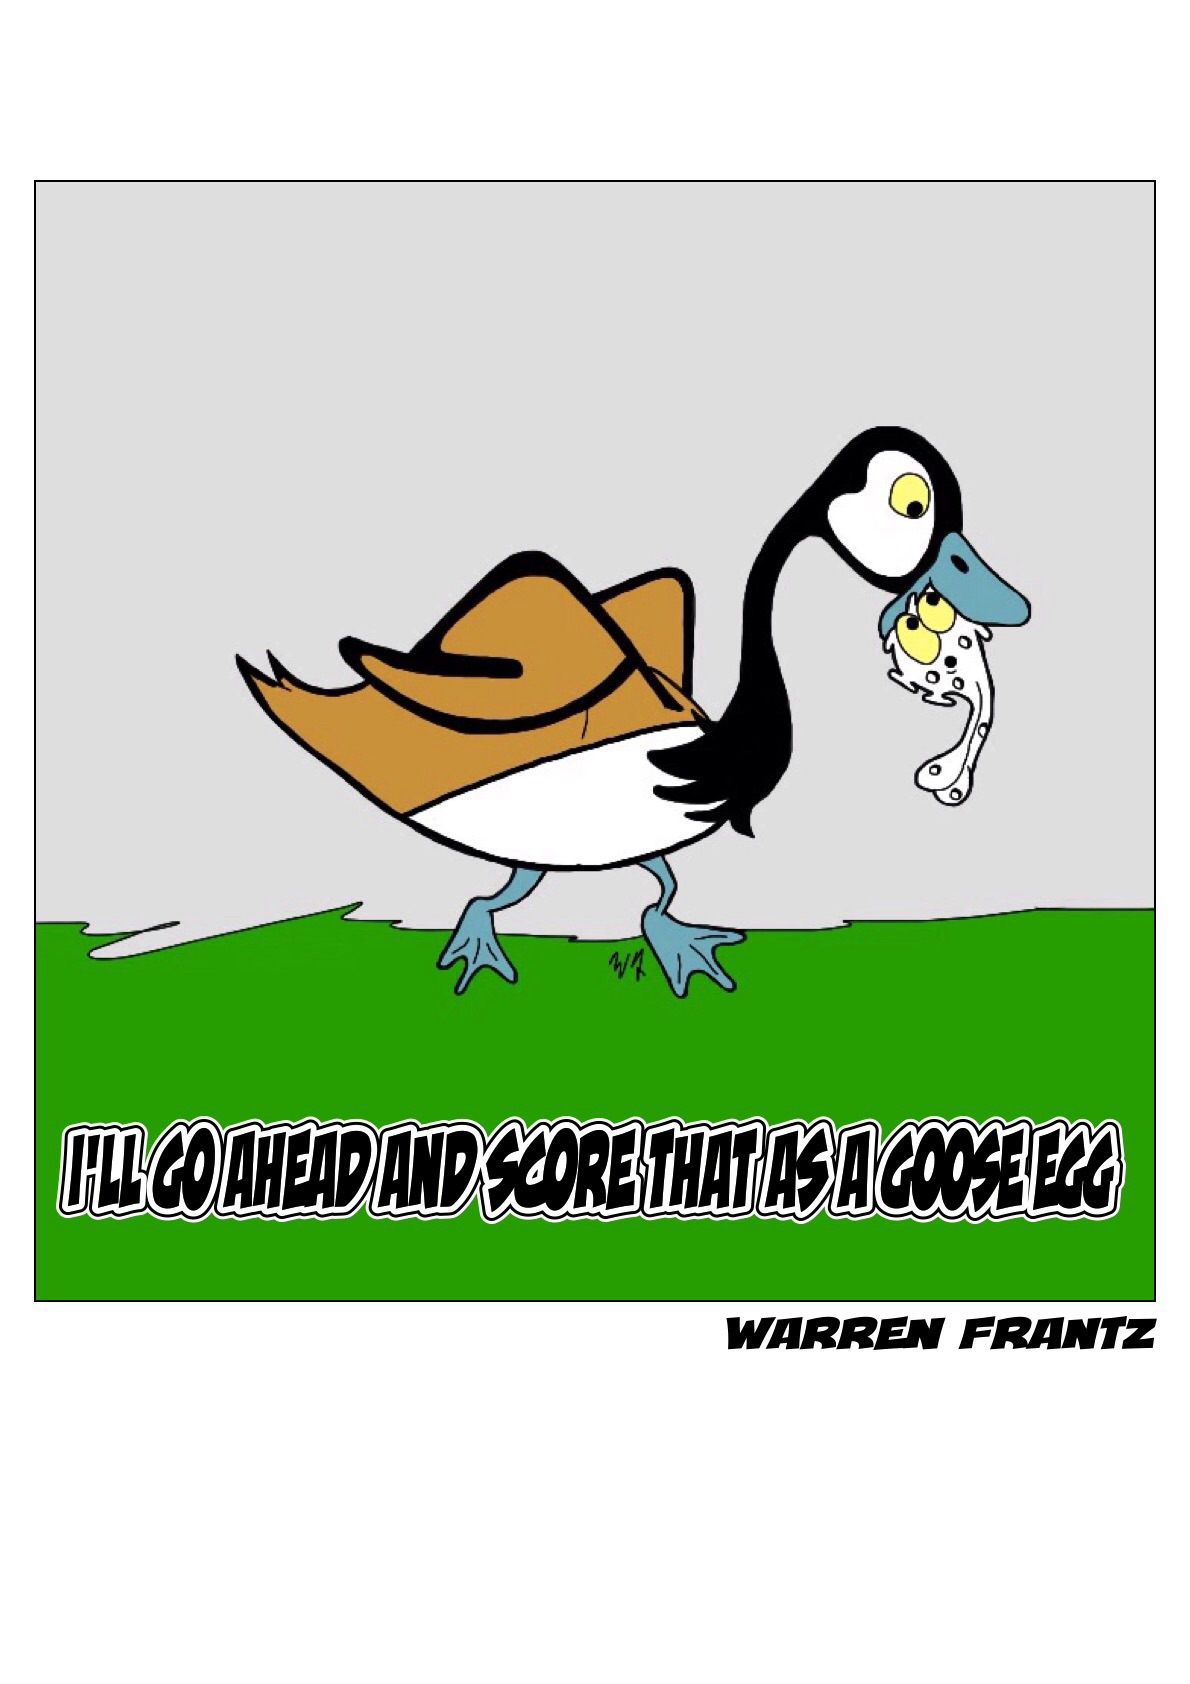 Scoring Is For The Birds